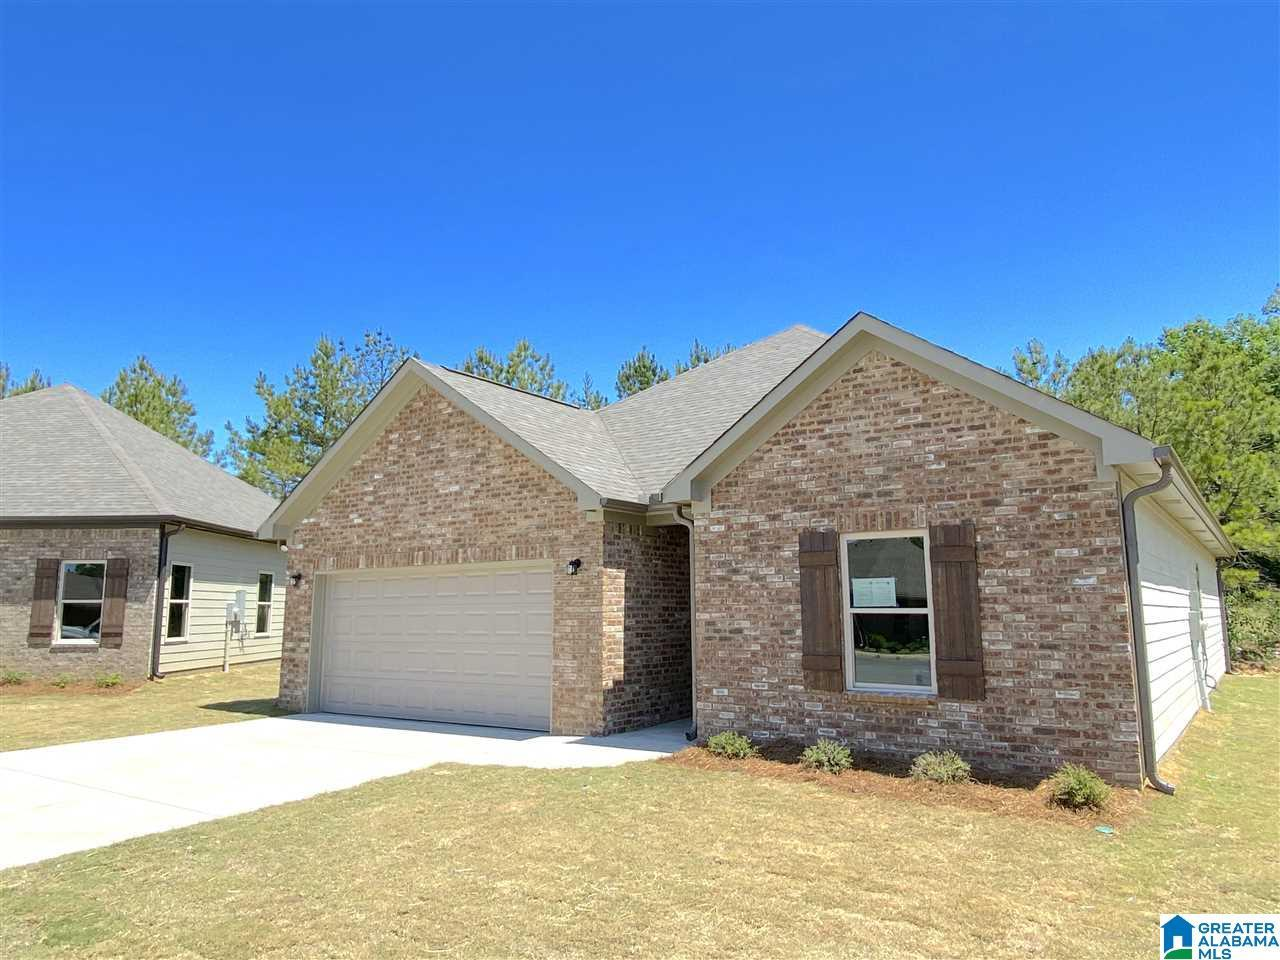 11362 CRIMSON RIDGE RD, Brookwood, AL 35444 - MLS#: 897778